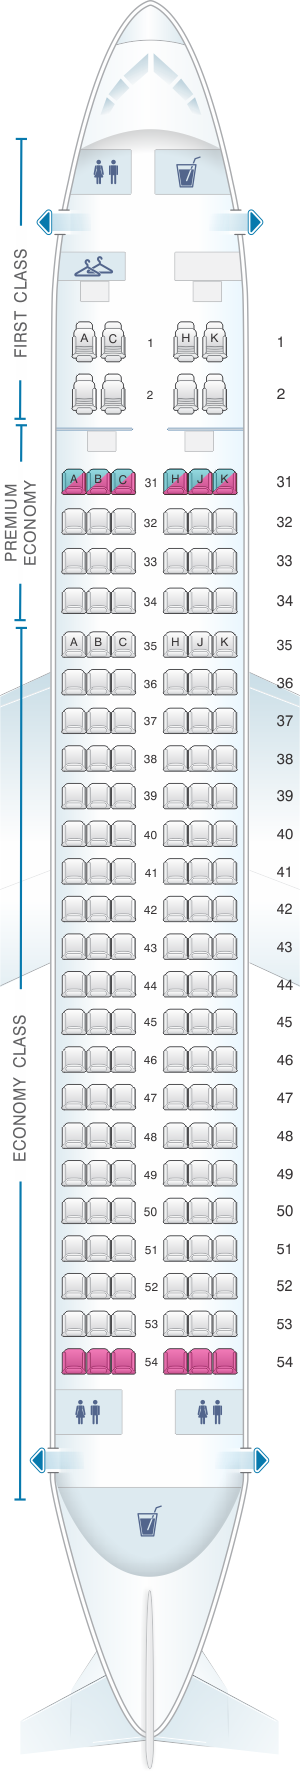 Seat map for China Southern Airlines Airbus A320